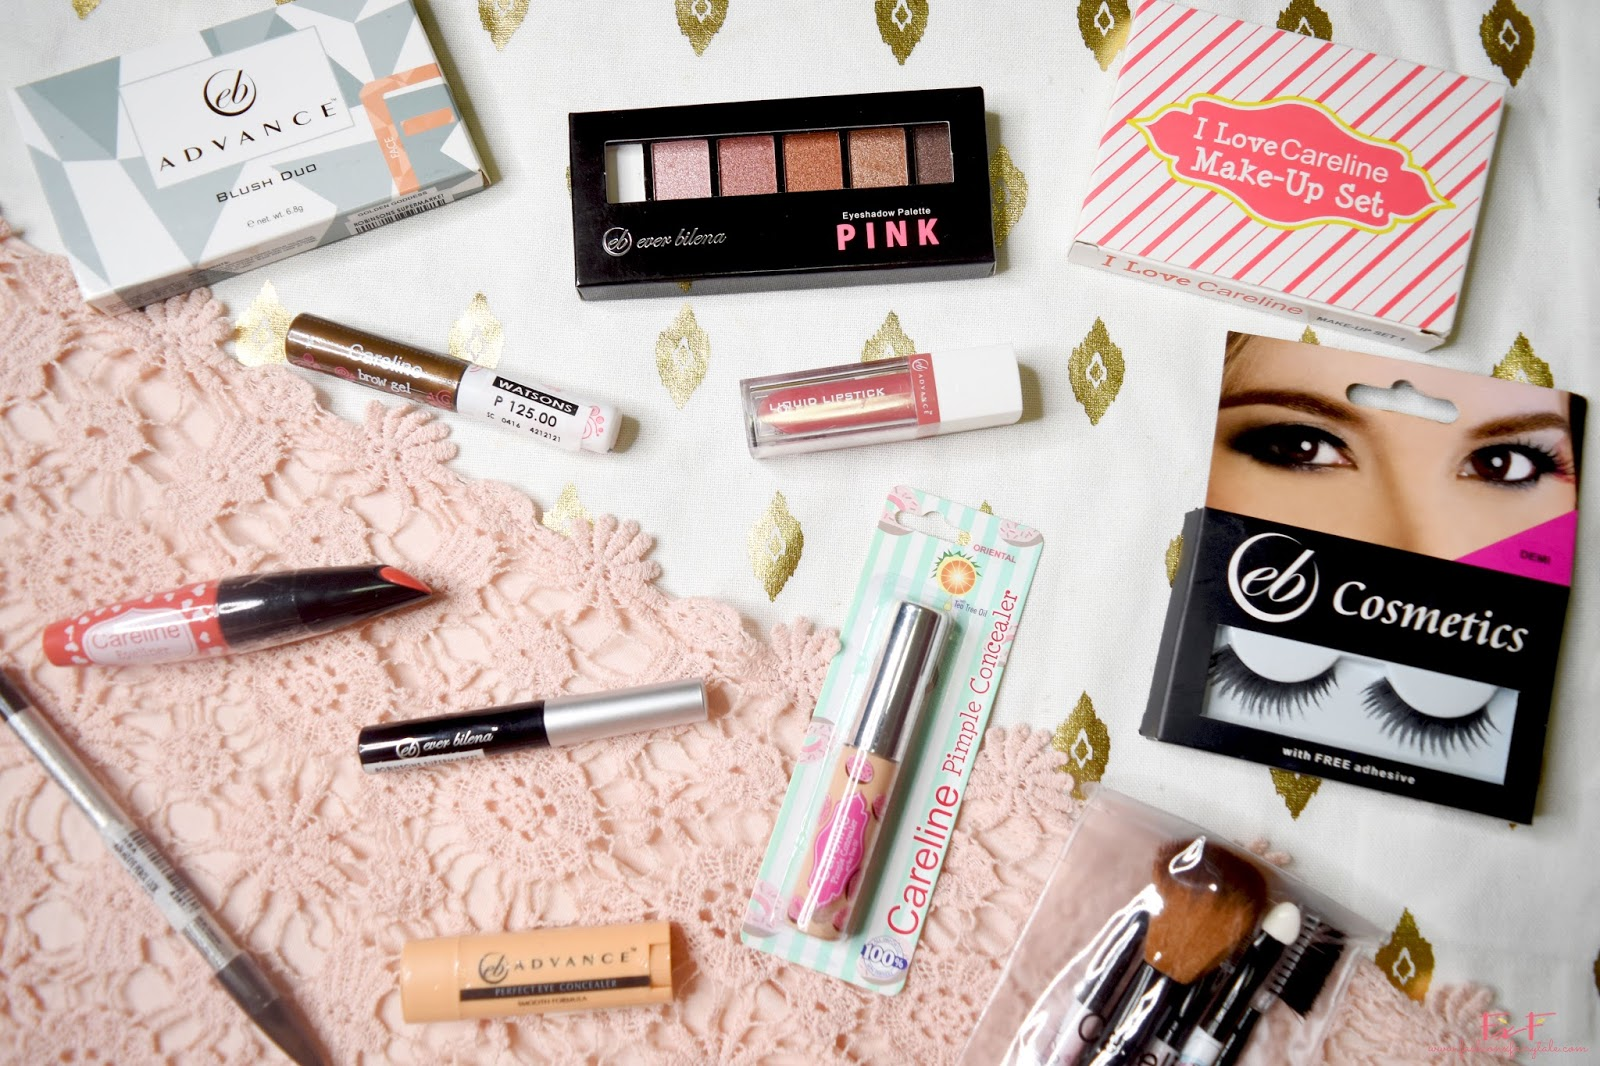 Drugstore Makeup Haul & Giveaway